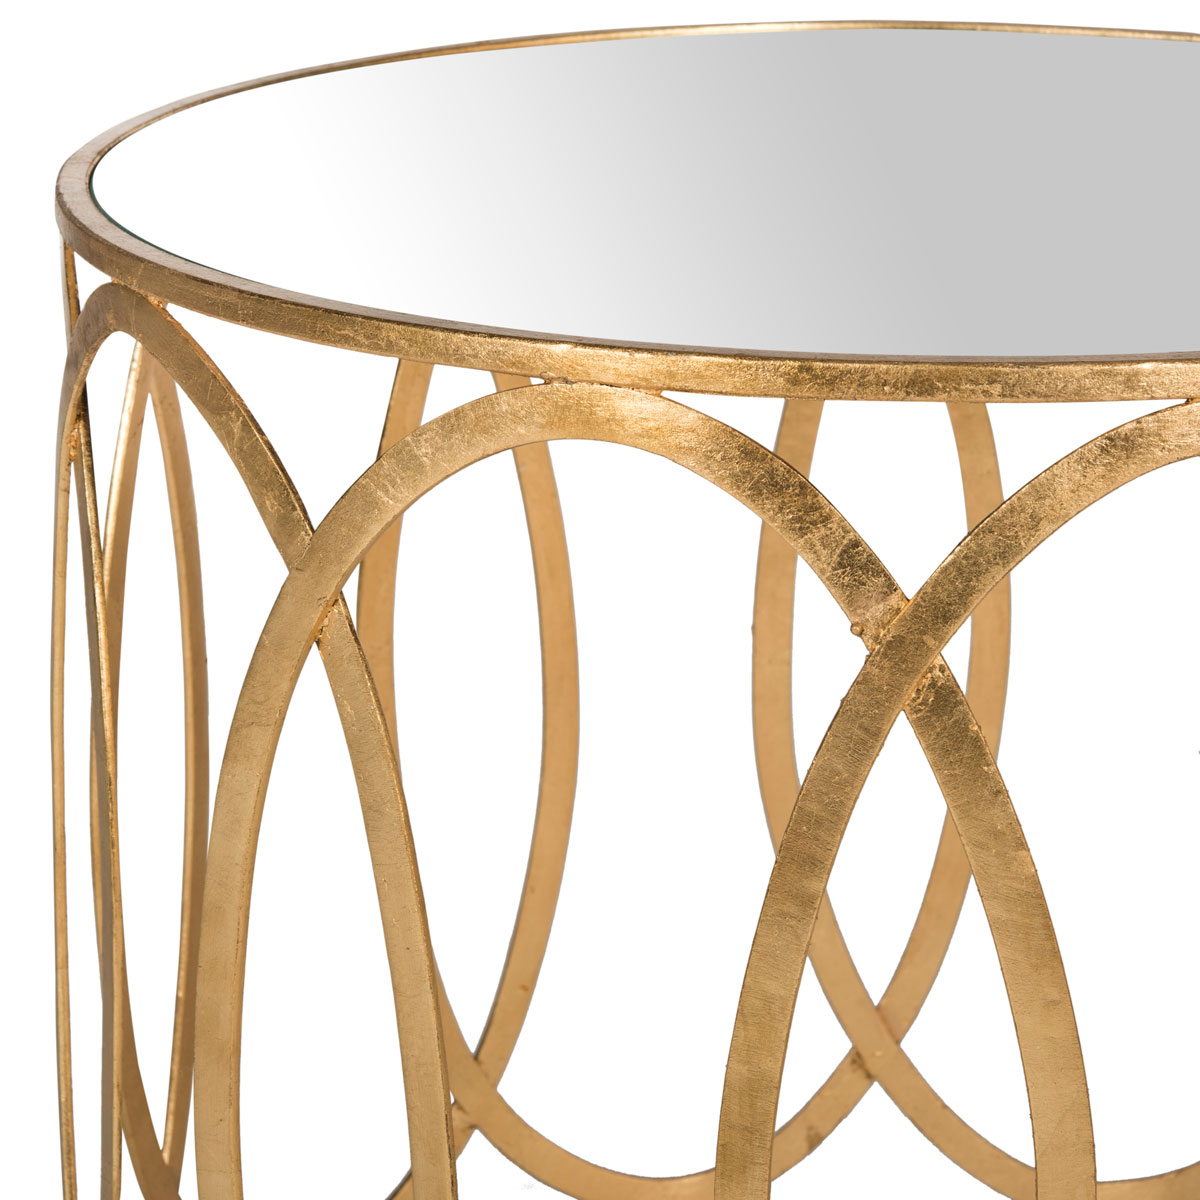 gold accent table end tables safavieh detail share this product modern white coffee nightstand target glass chrome side design for drawing room home decorators catalog coastal